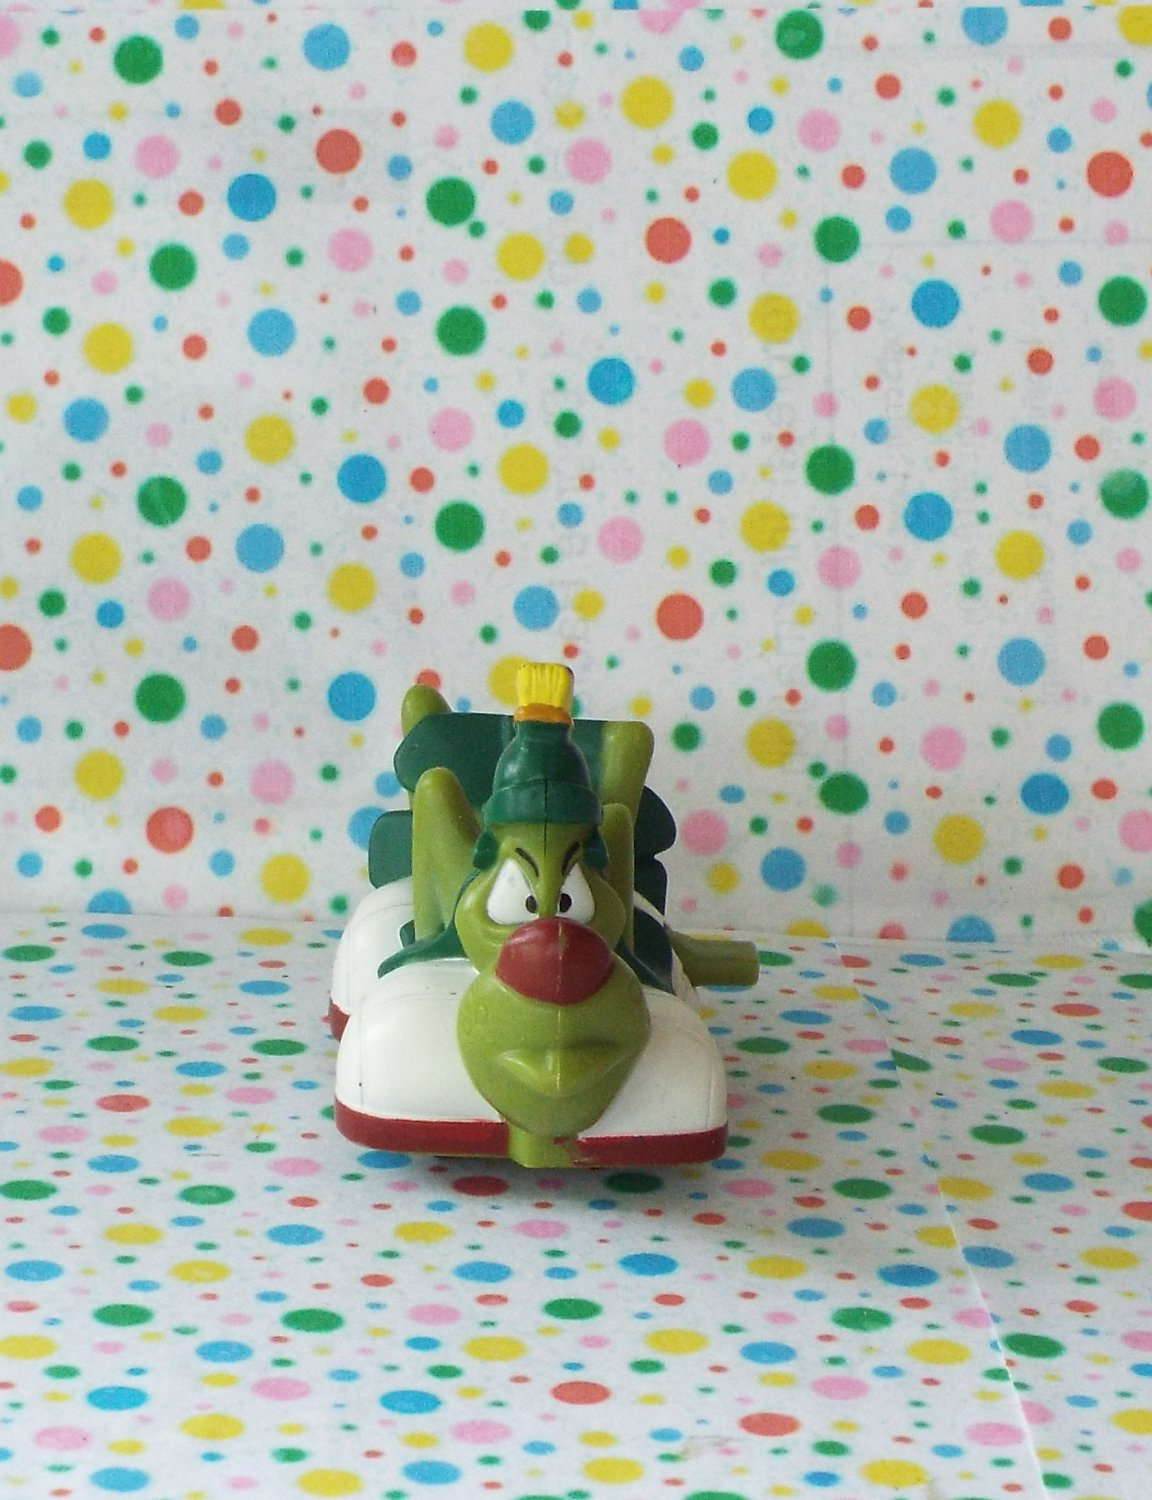 Marvin the Martian K9 Dog Wind Up Toy